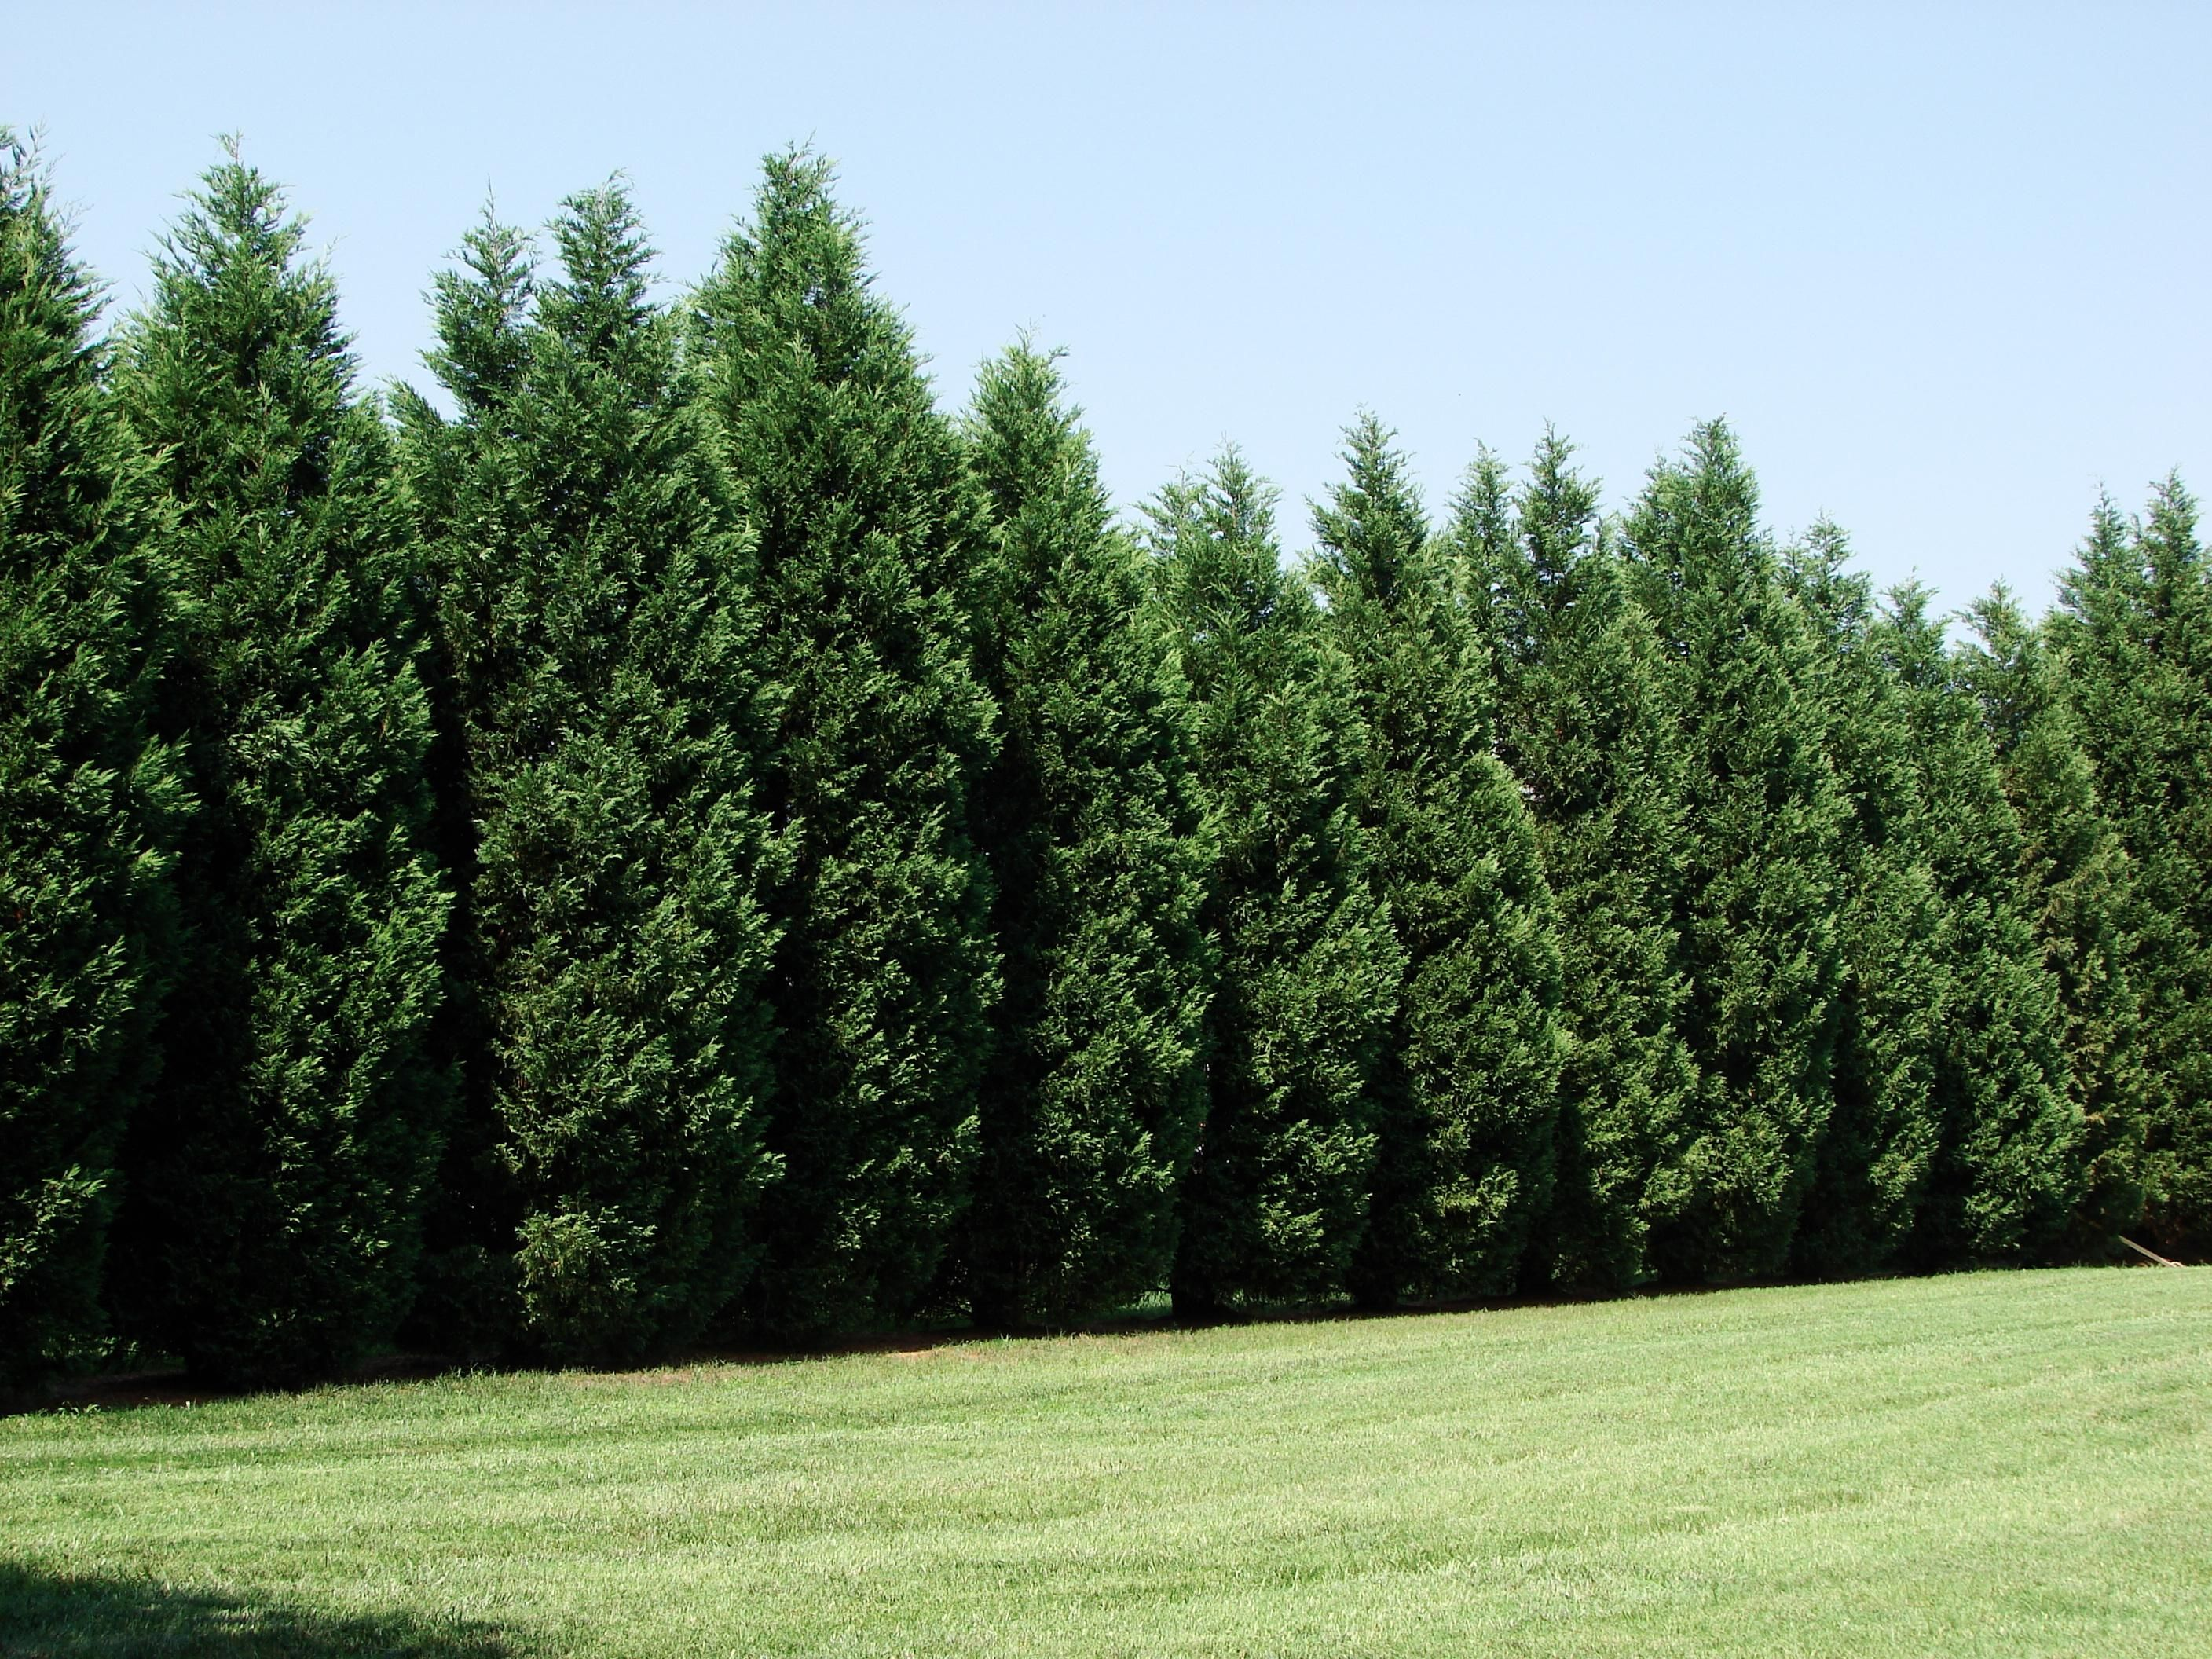 12 reasons proving Leyland Cypress Trees are best